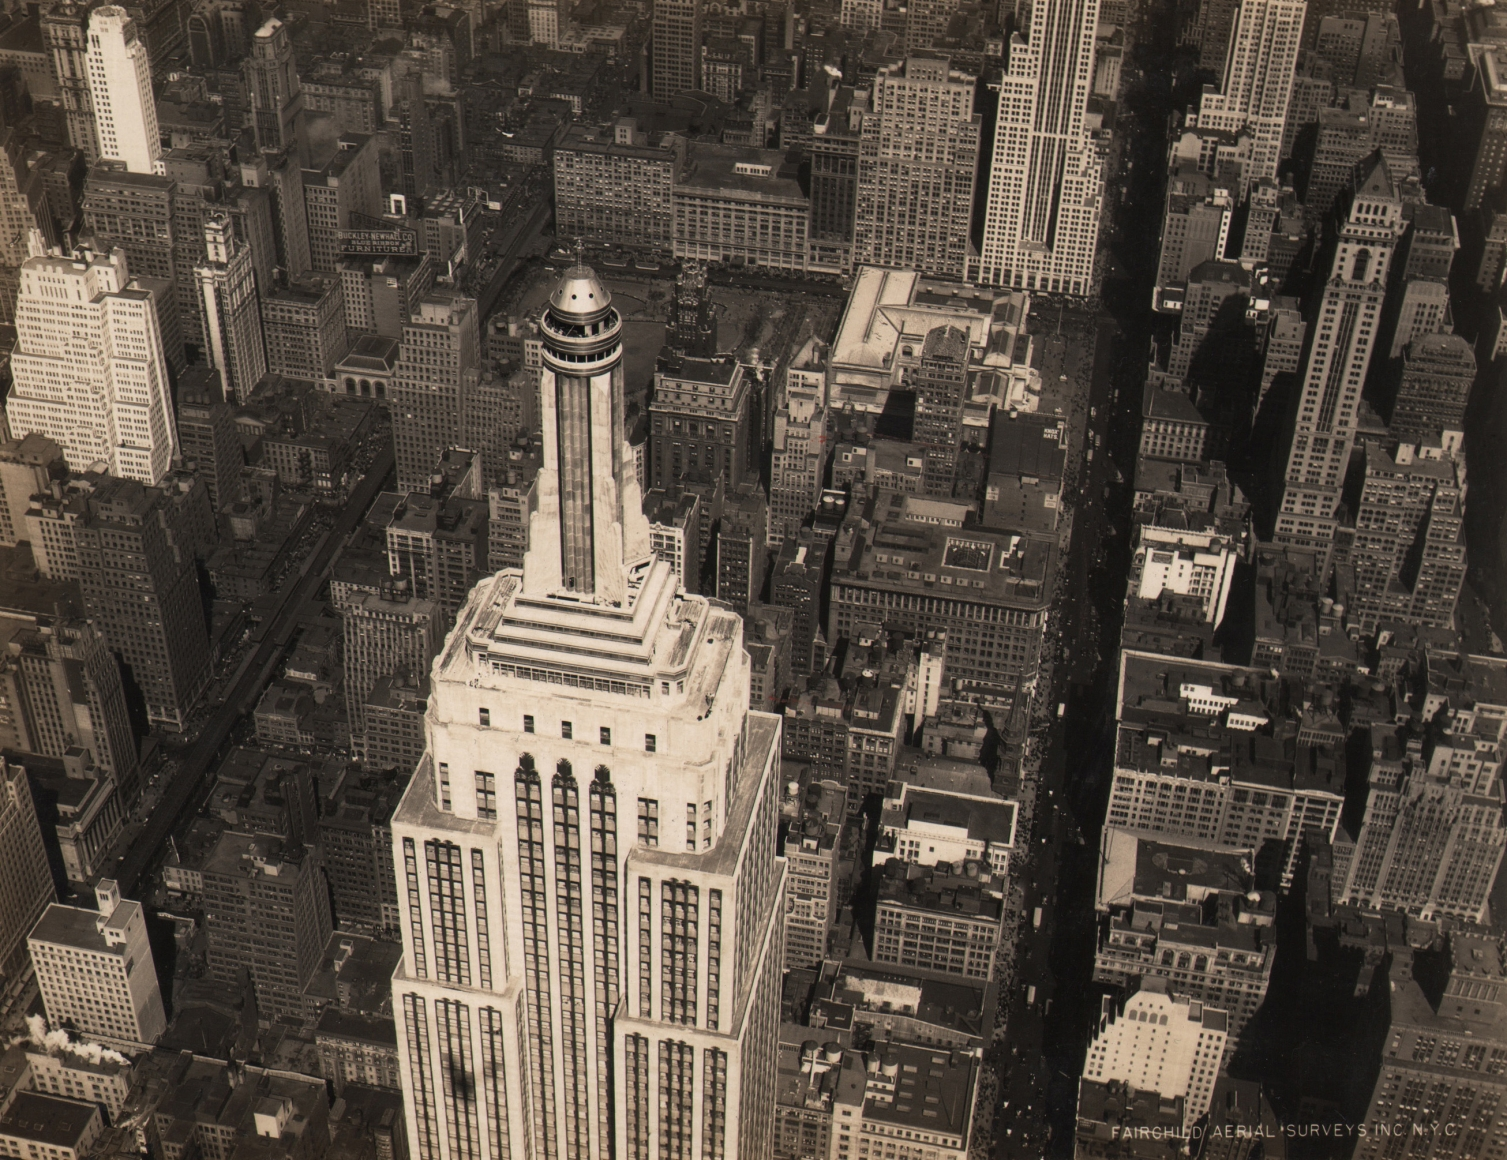 24. Fairchild Aerial Surveys, Empire State Building, Midtown, NYC, 1931. Aerial view of the top half of the Empire State Building, photographed from the above and to the right. Other city buildings and streets can be seen below.